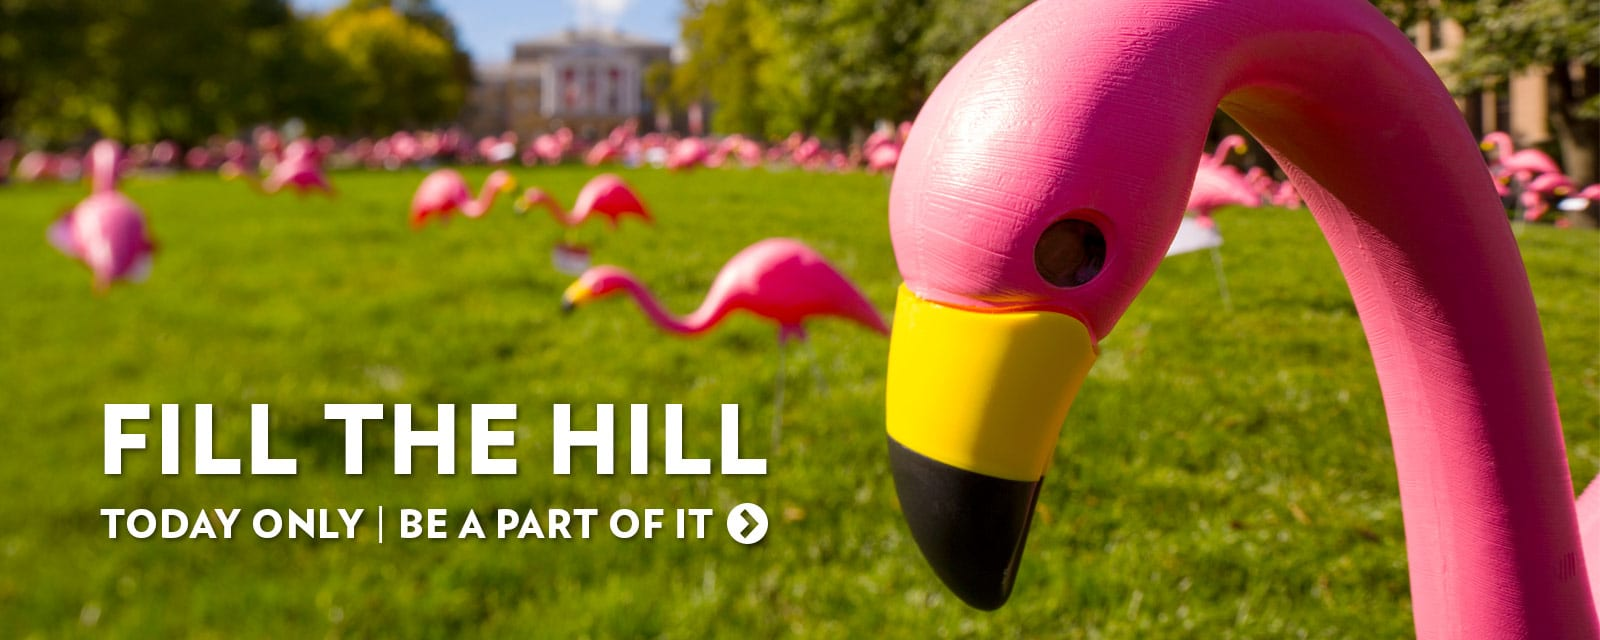 Fill the Hill, today only. Be a part of the university's annual flamingos on Bascom Hill giving event.